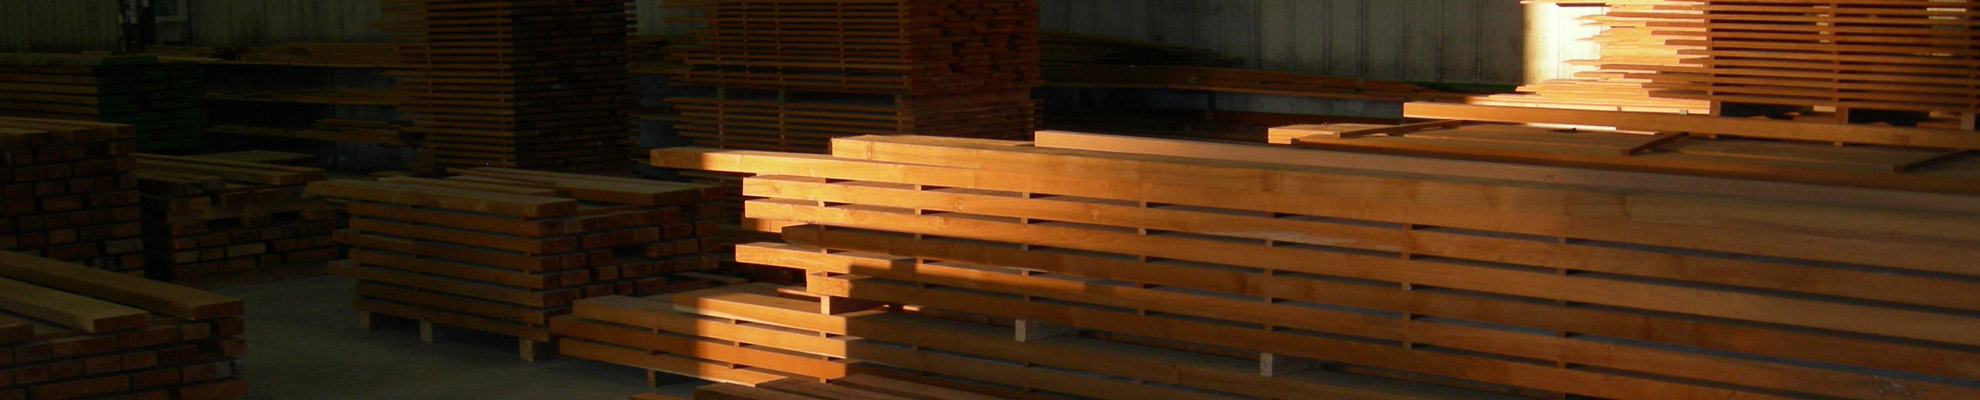 Comilegno Srl - teak and timbers